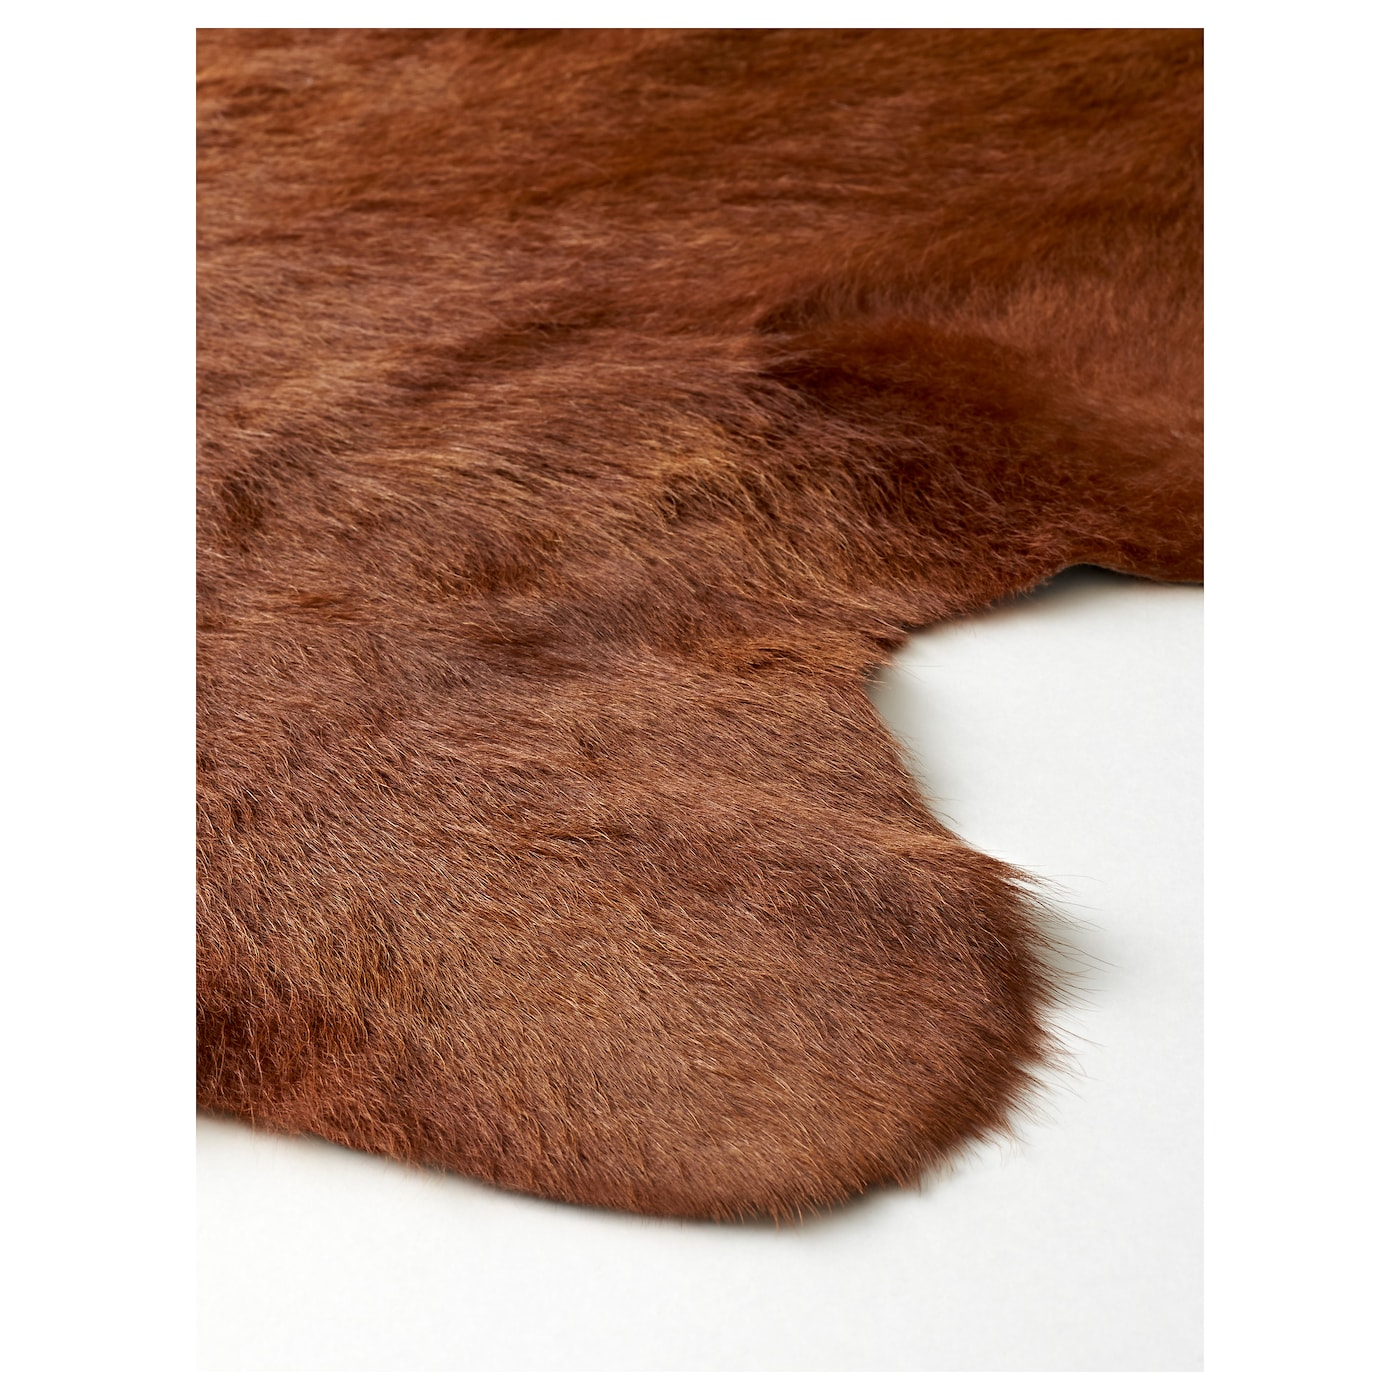 not ottoman hack it cowhide or and with made apr this ikea pin an gorgeous rug believe was